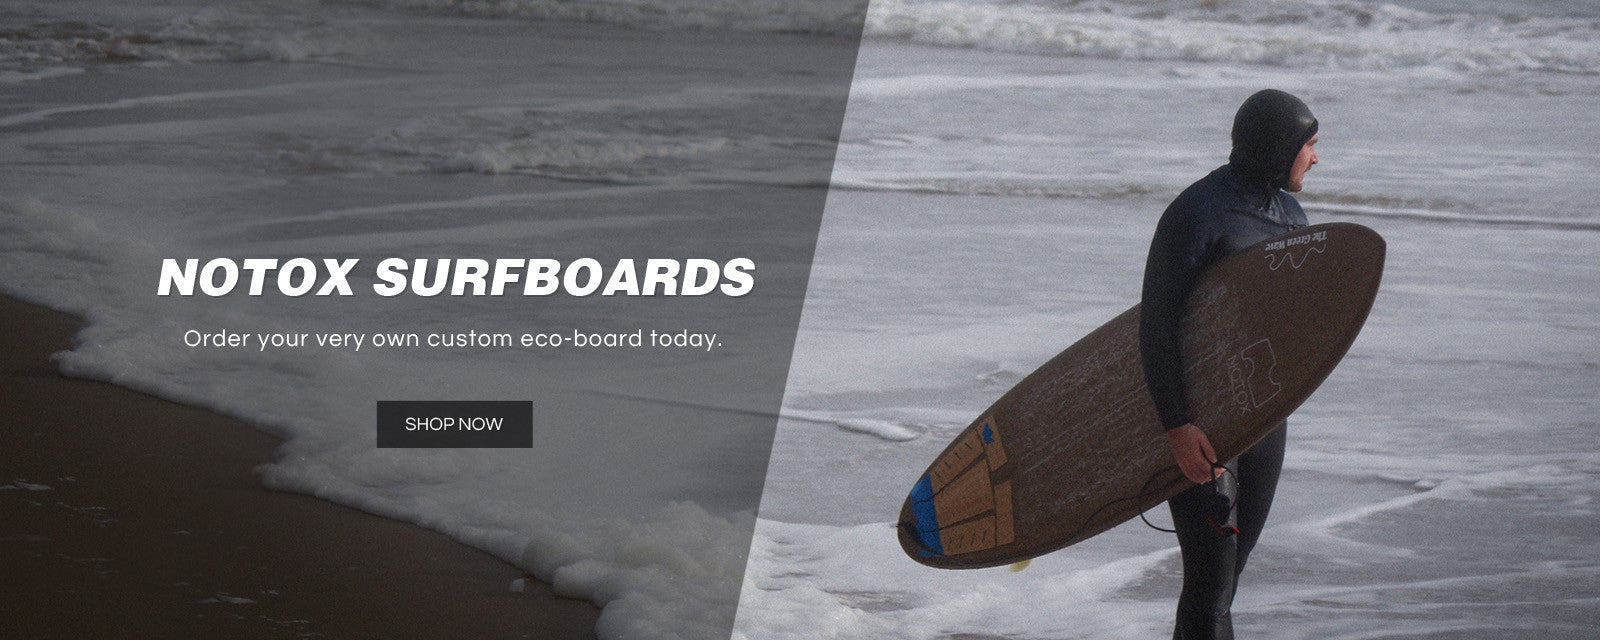 NOTOX Eco-friendly Surfboards - The Green Wave is UK Official Distributor